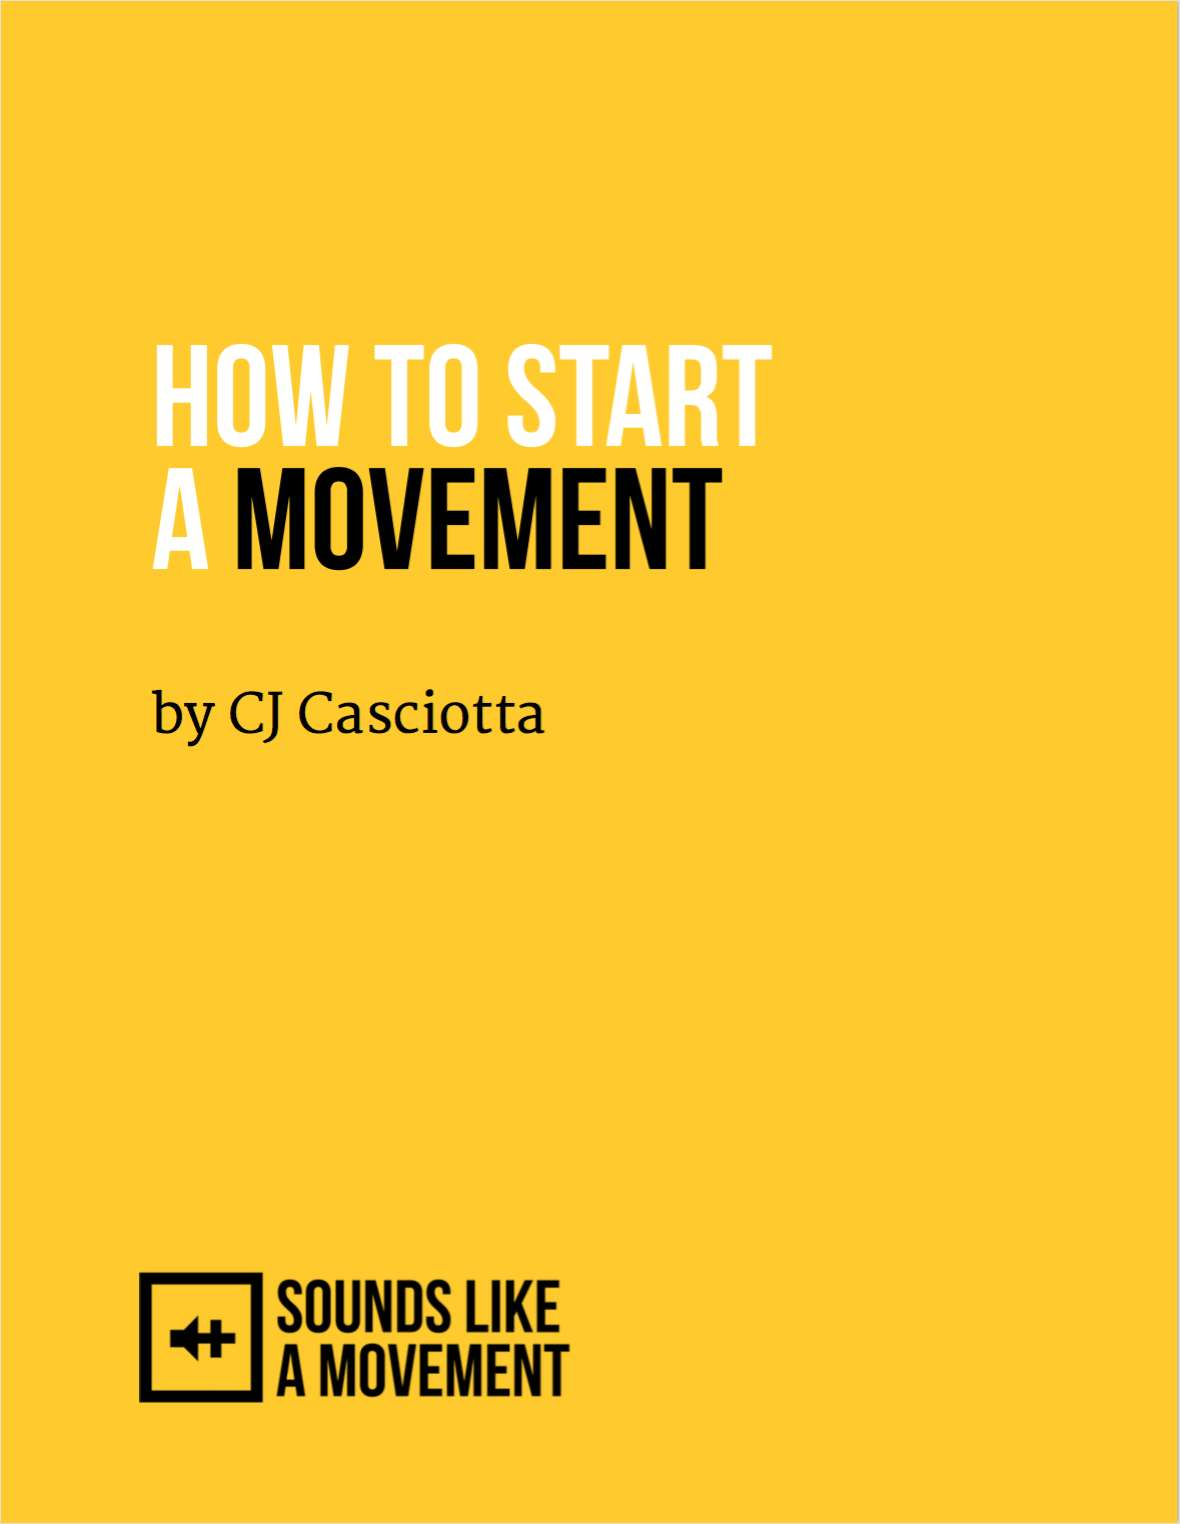 How to Start a Movement